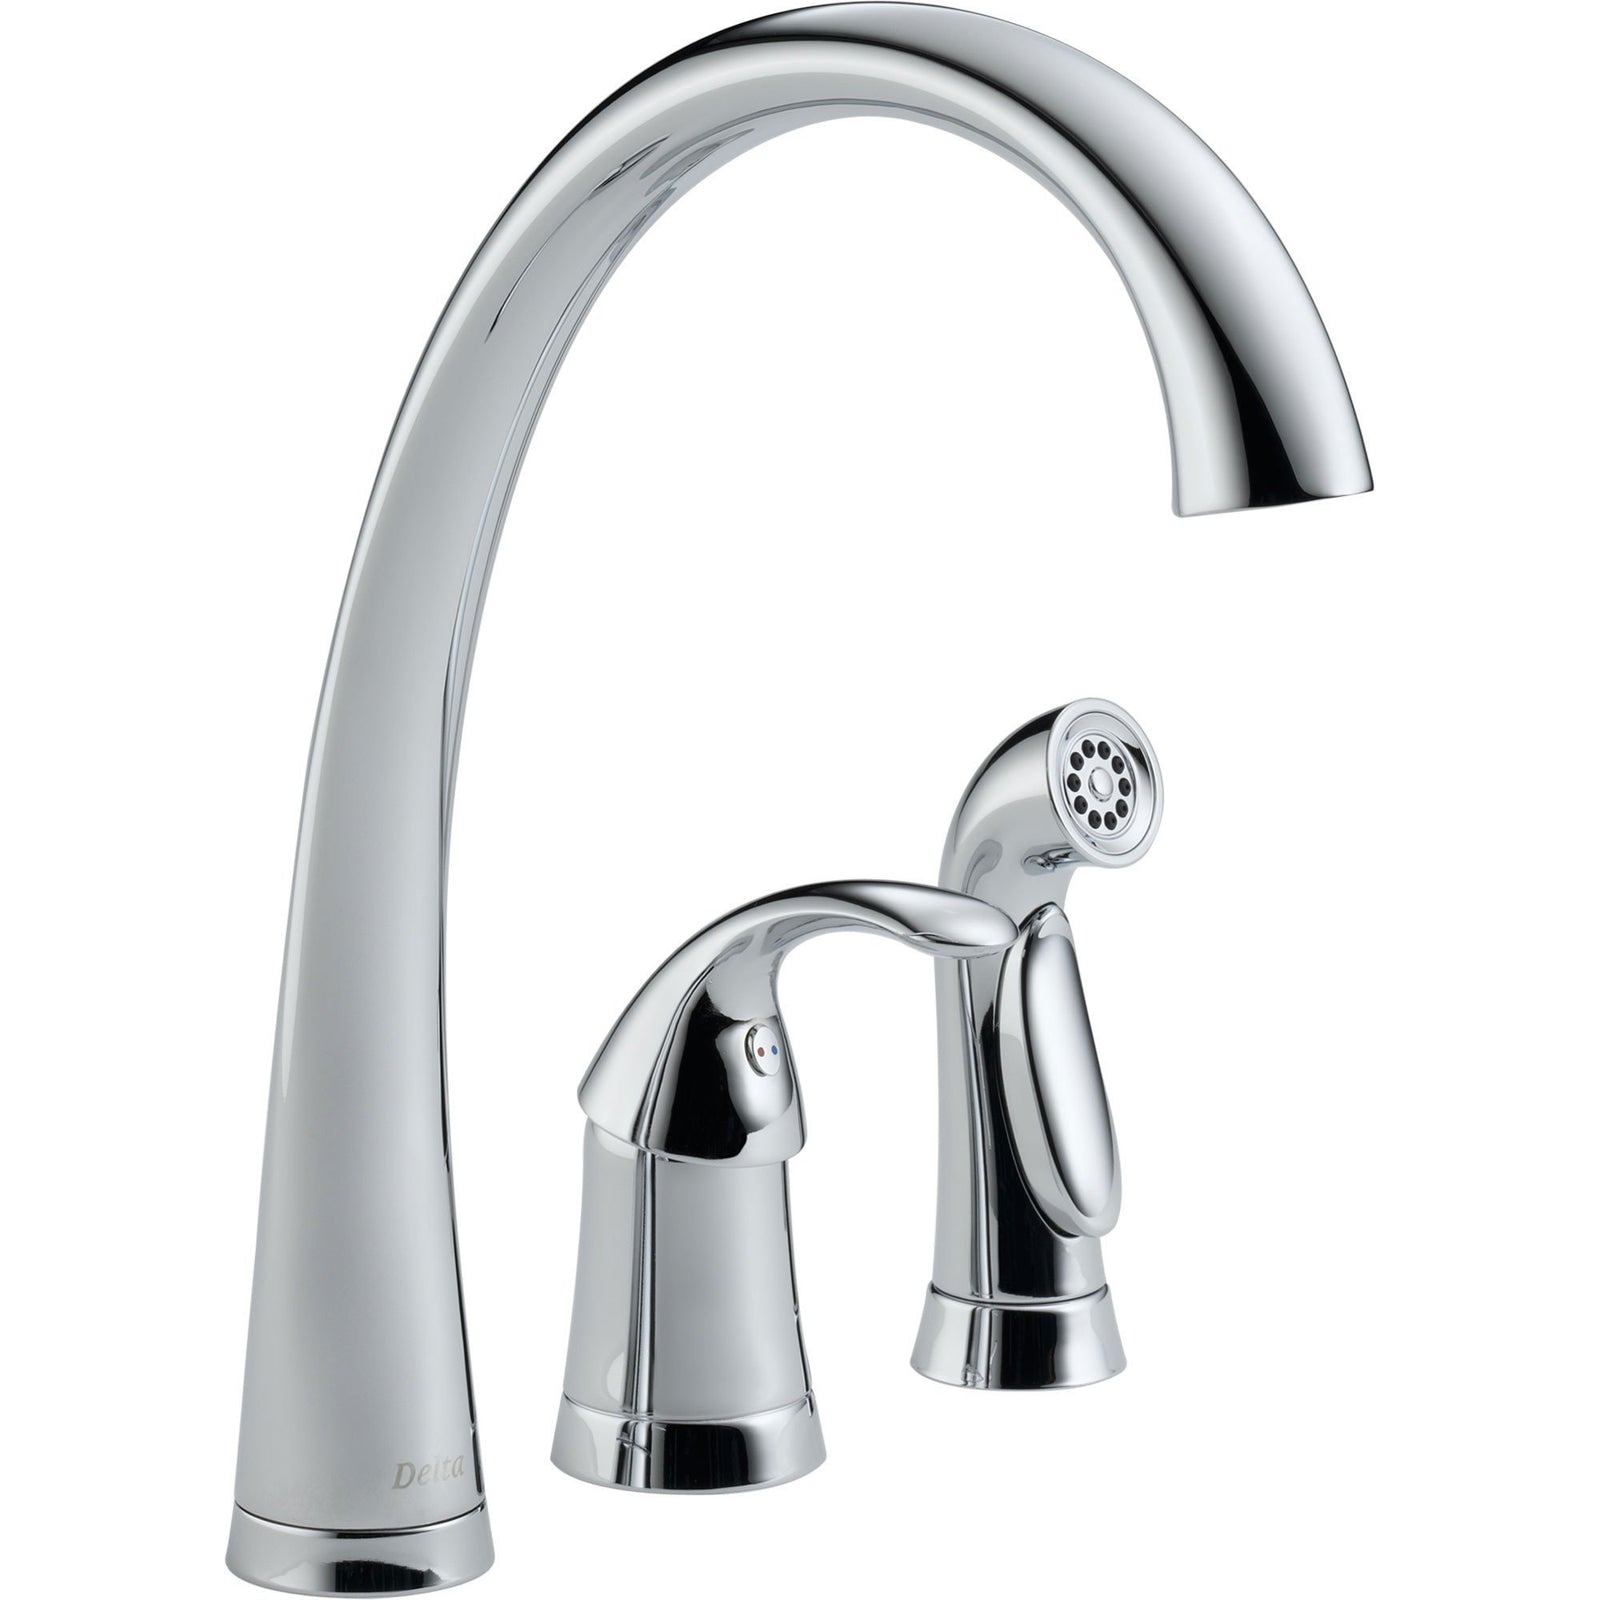 3 Hole Kitchen Faucets Get A Three Hole Kitchen Sink Faucet